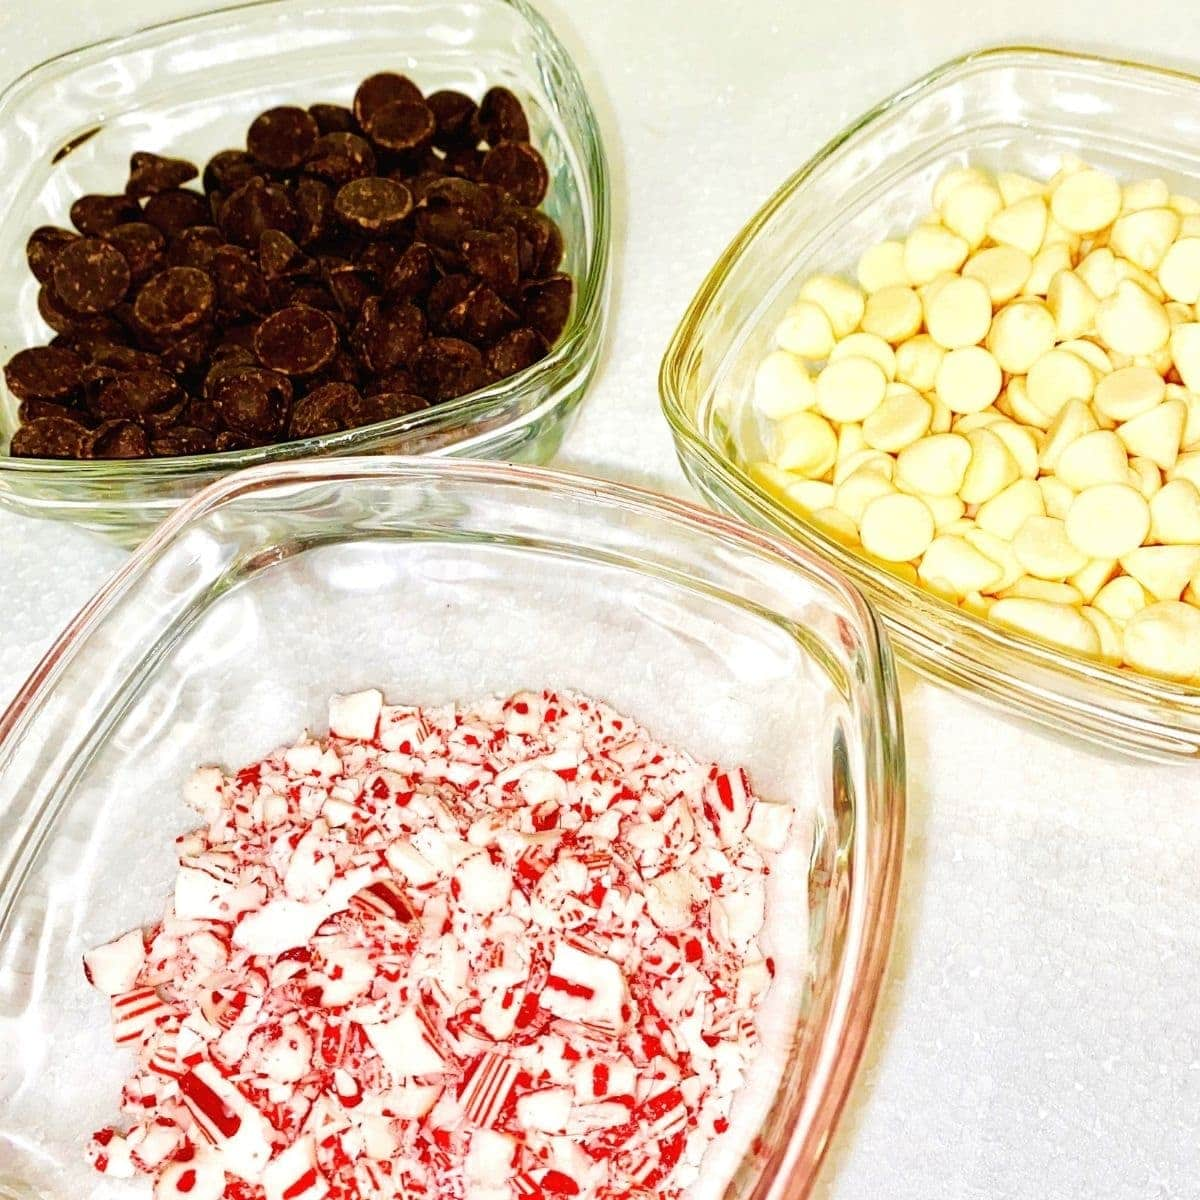 chopped candy canes and chocolate chips in glass bowls.